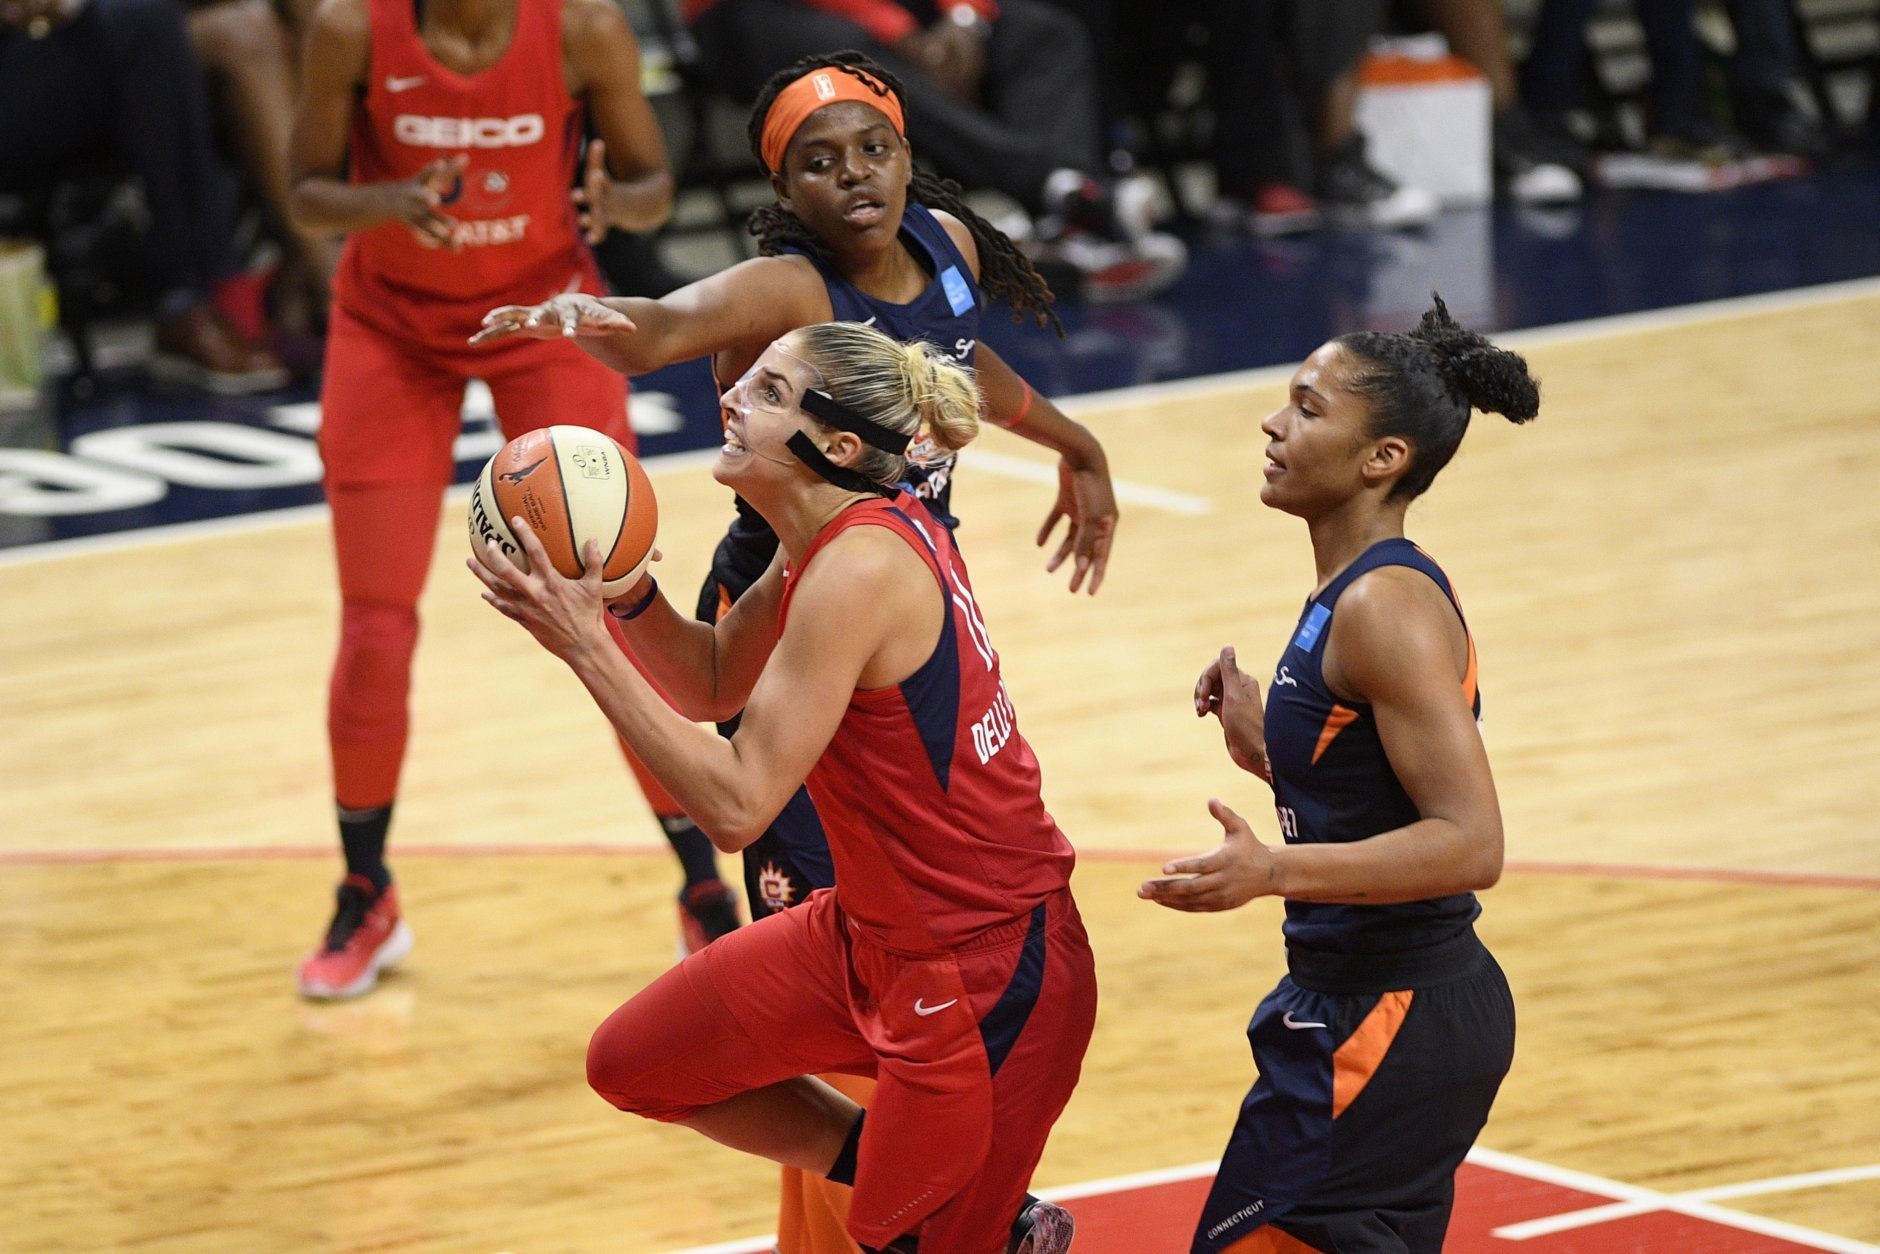 Washington Mystics forward Elena Delle Donne, front left, goes to the basket past Connecticut Sun forward Jonquel Jones, top, and forward Alyssa Thomas, right, in the first half of Game 5 of basketball's WNBA Finals, Thursday, Oct. 10, 2019, in Washington. (AP Photo/Nick Wass)